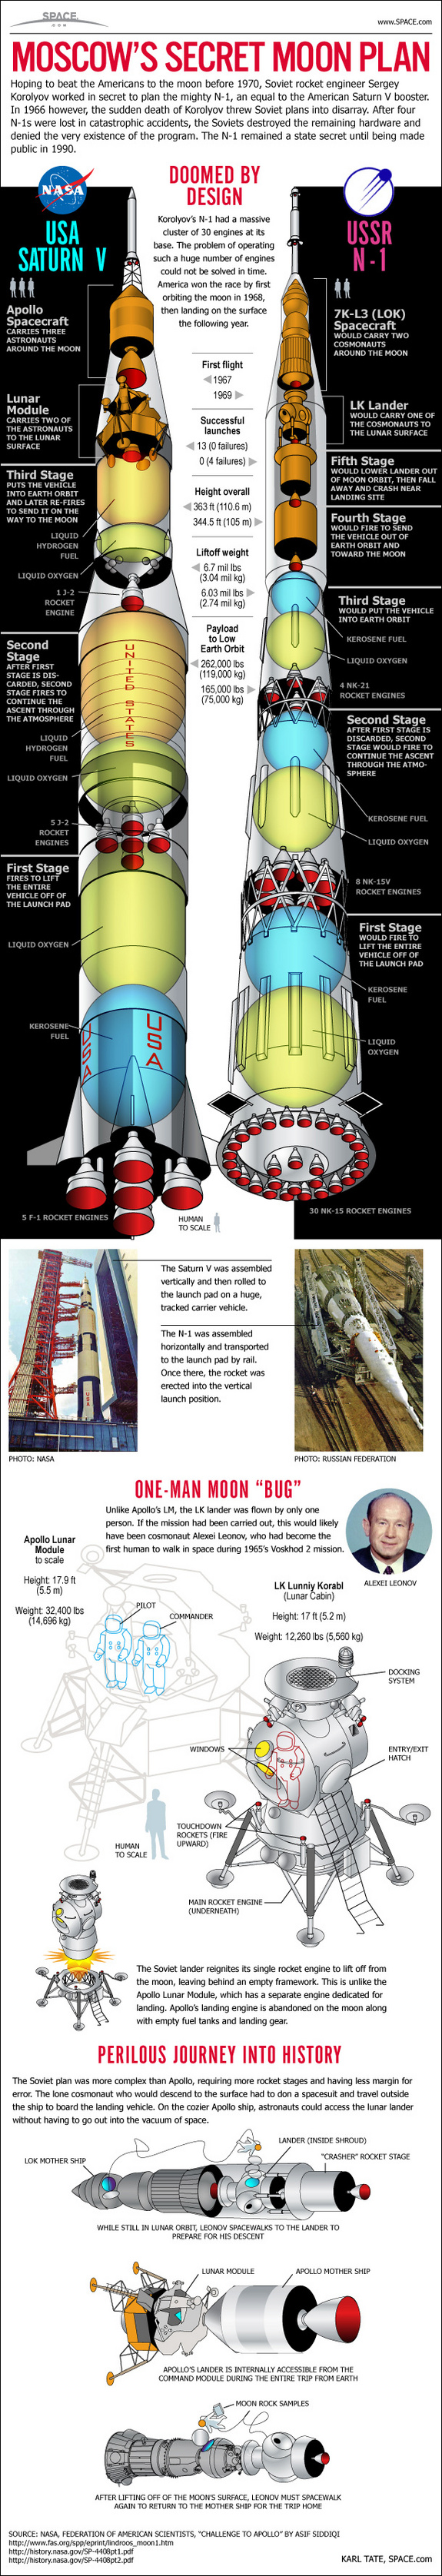 See how the former Soviet Union planned to match the U.S. Apollo moon landings with the N-1 rocket in this infographic.